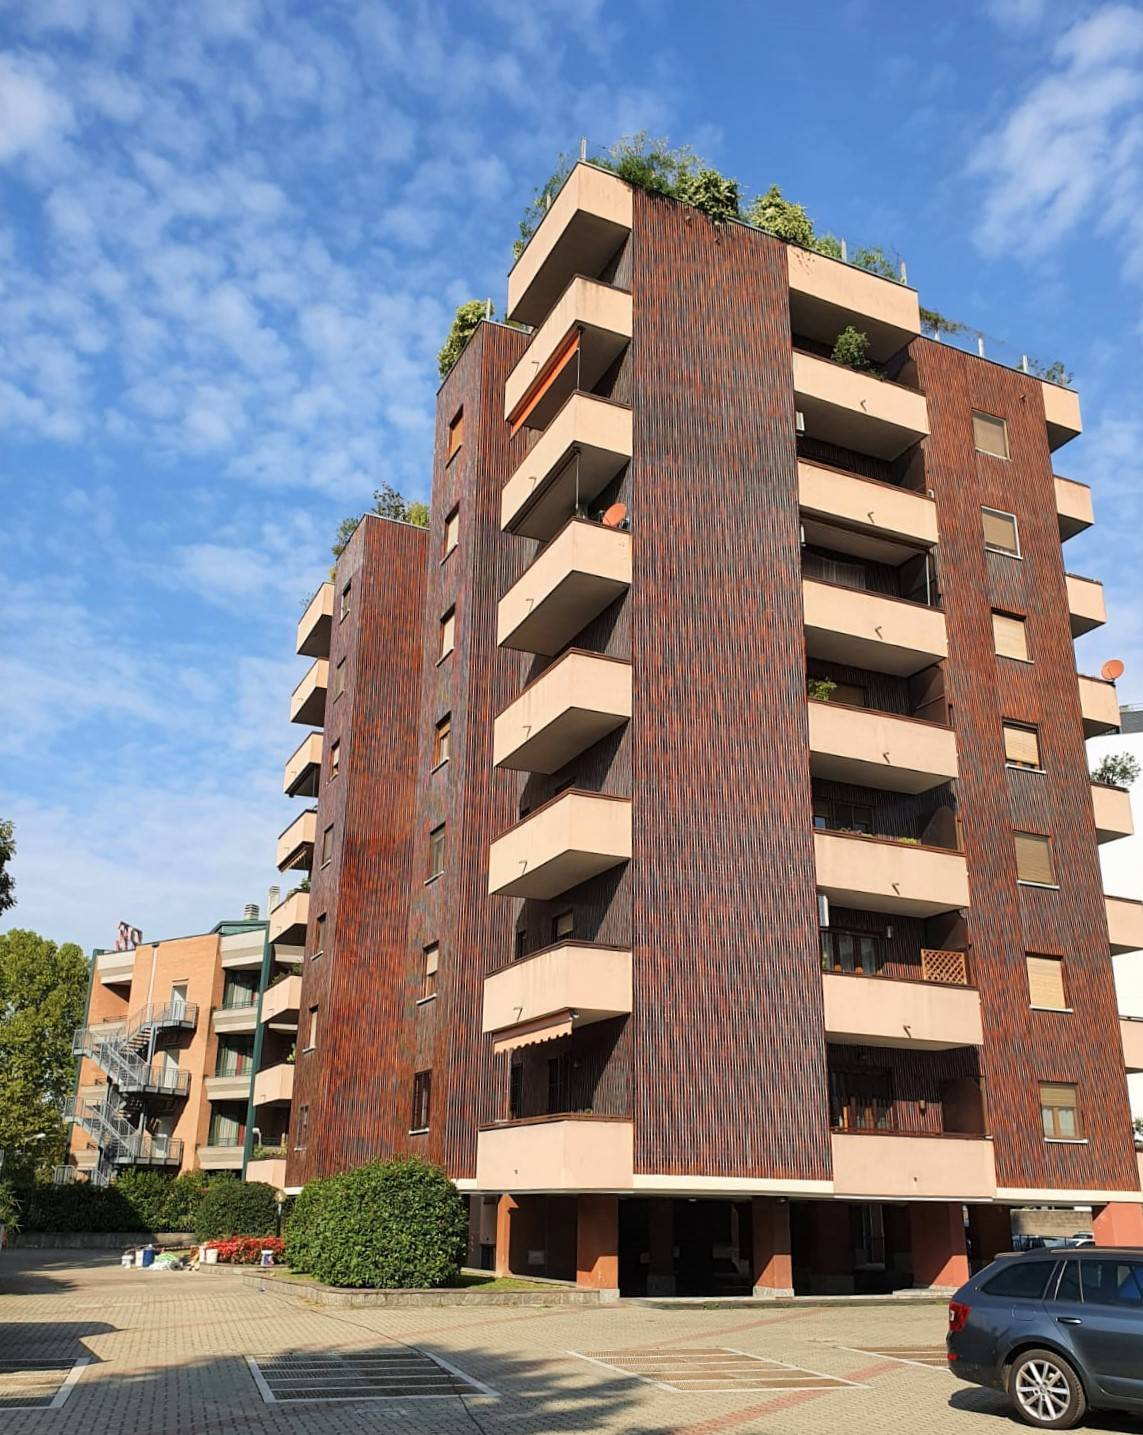 SESTO SAN GIOVANNI, Apartment for sale, Be restored, Heating Centralized, Energetic class: G, Epi: 175 kwh/m2 year, placed at 3° on 8, composed by: 4